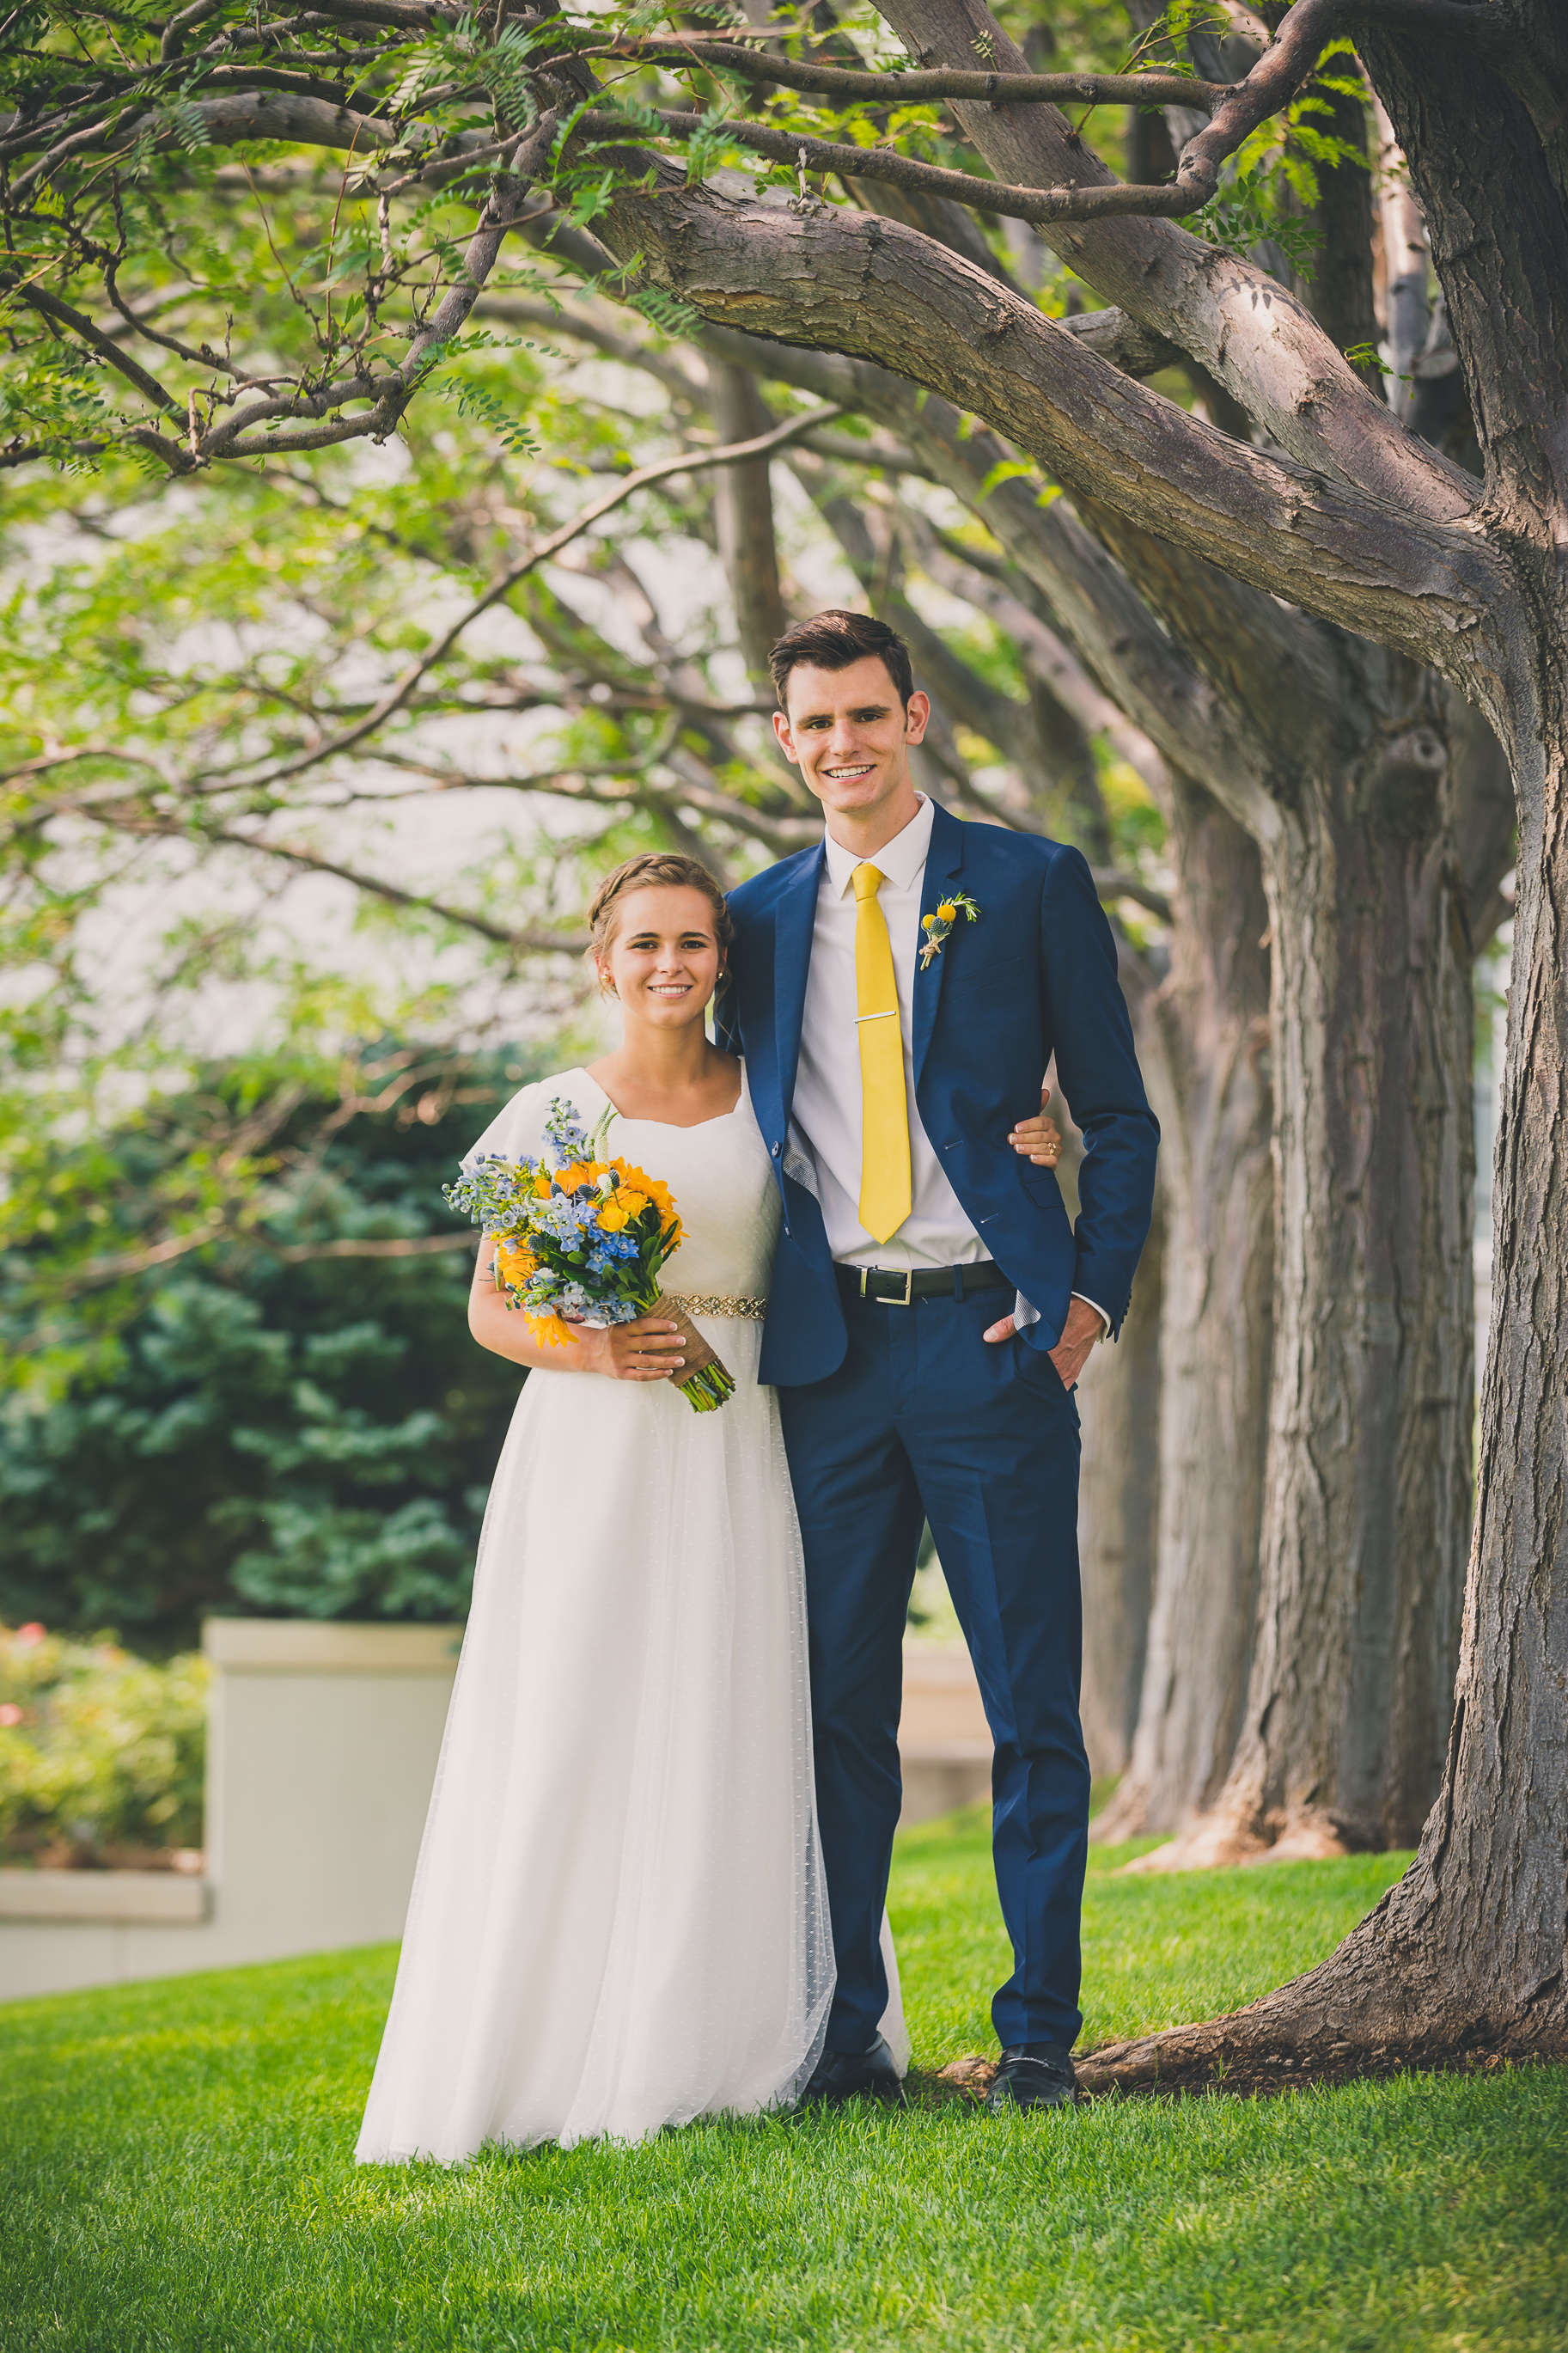 SydneyAndrew_Wed348.jpg